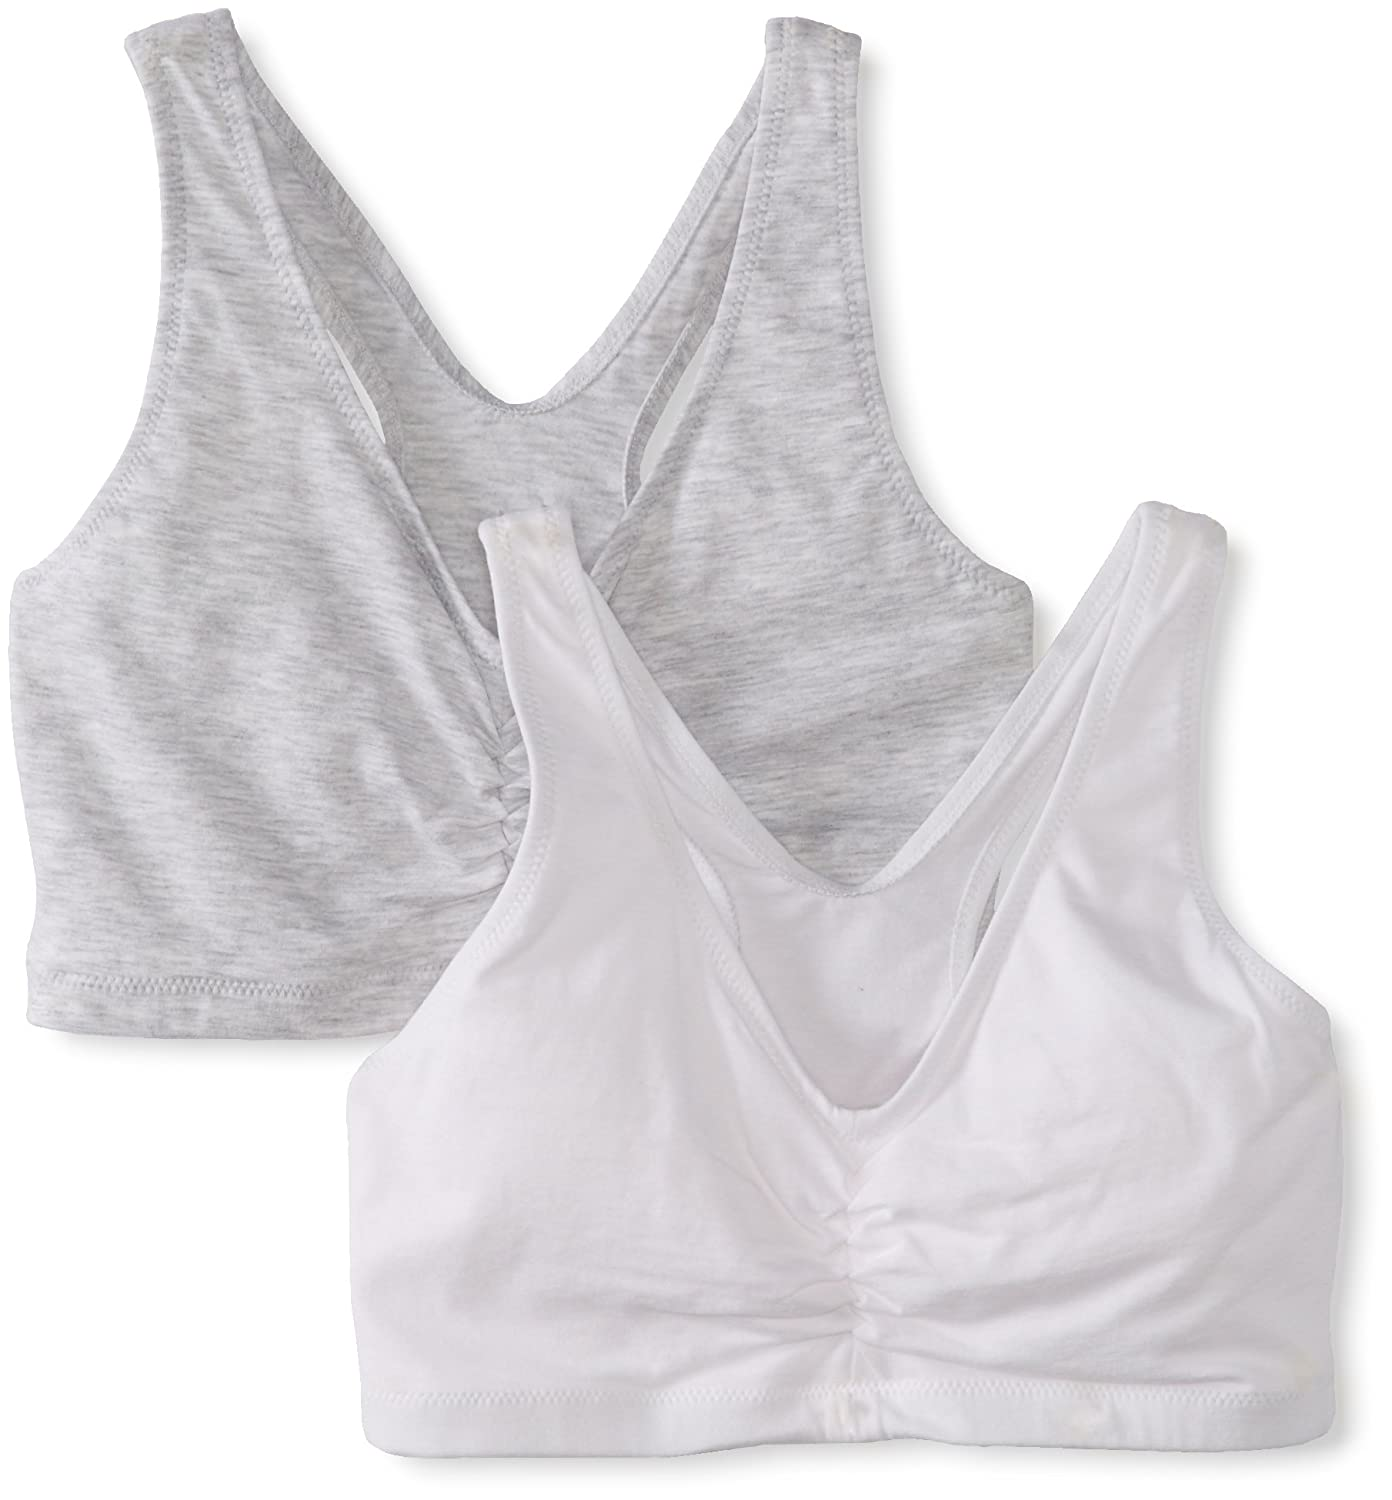 Hanes Women's Comfort-Blend Flex Fit Pullover Bra (Pack of 2) Hanes Bras H570